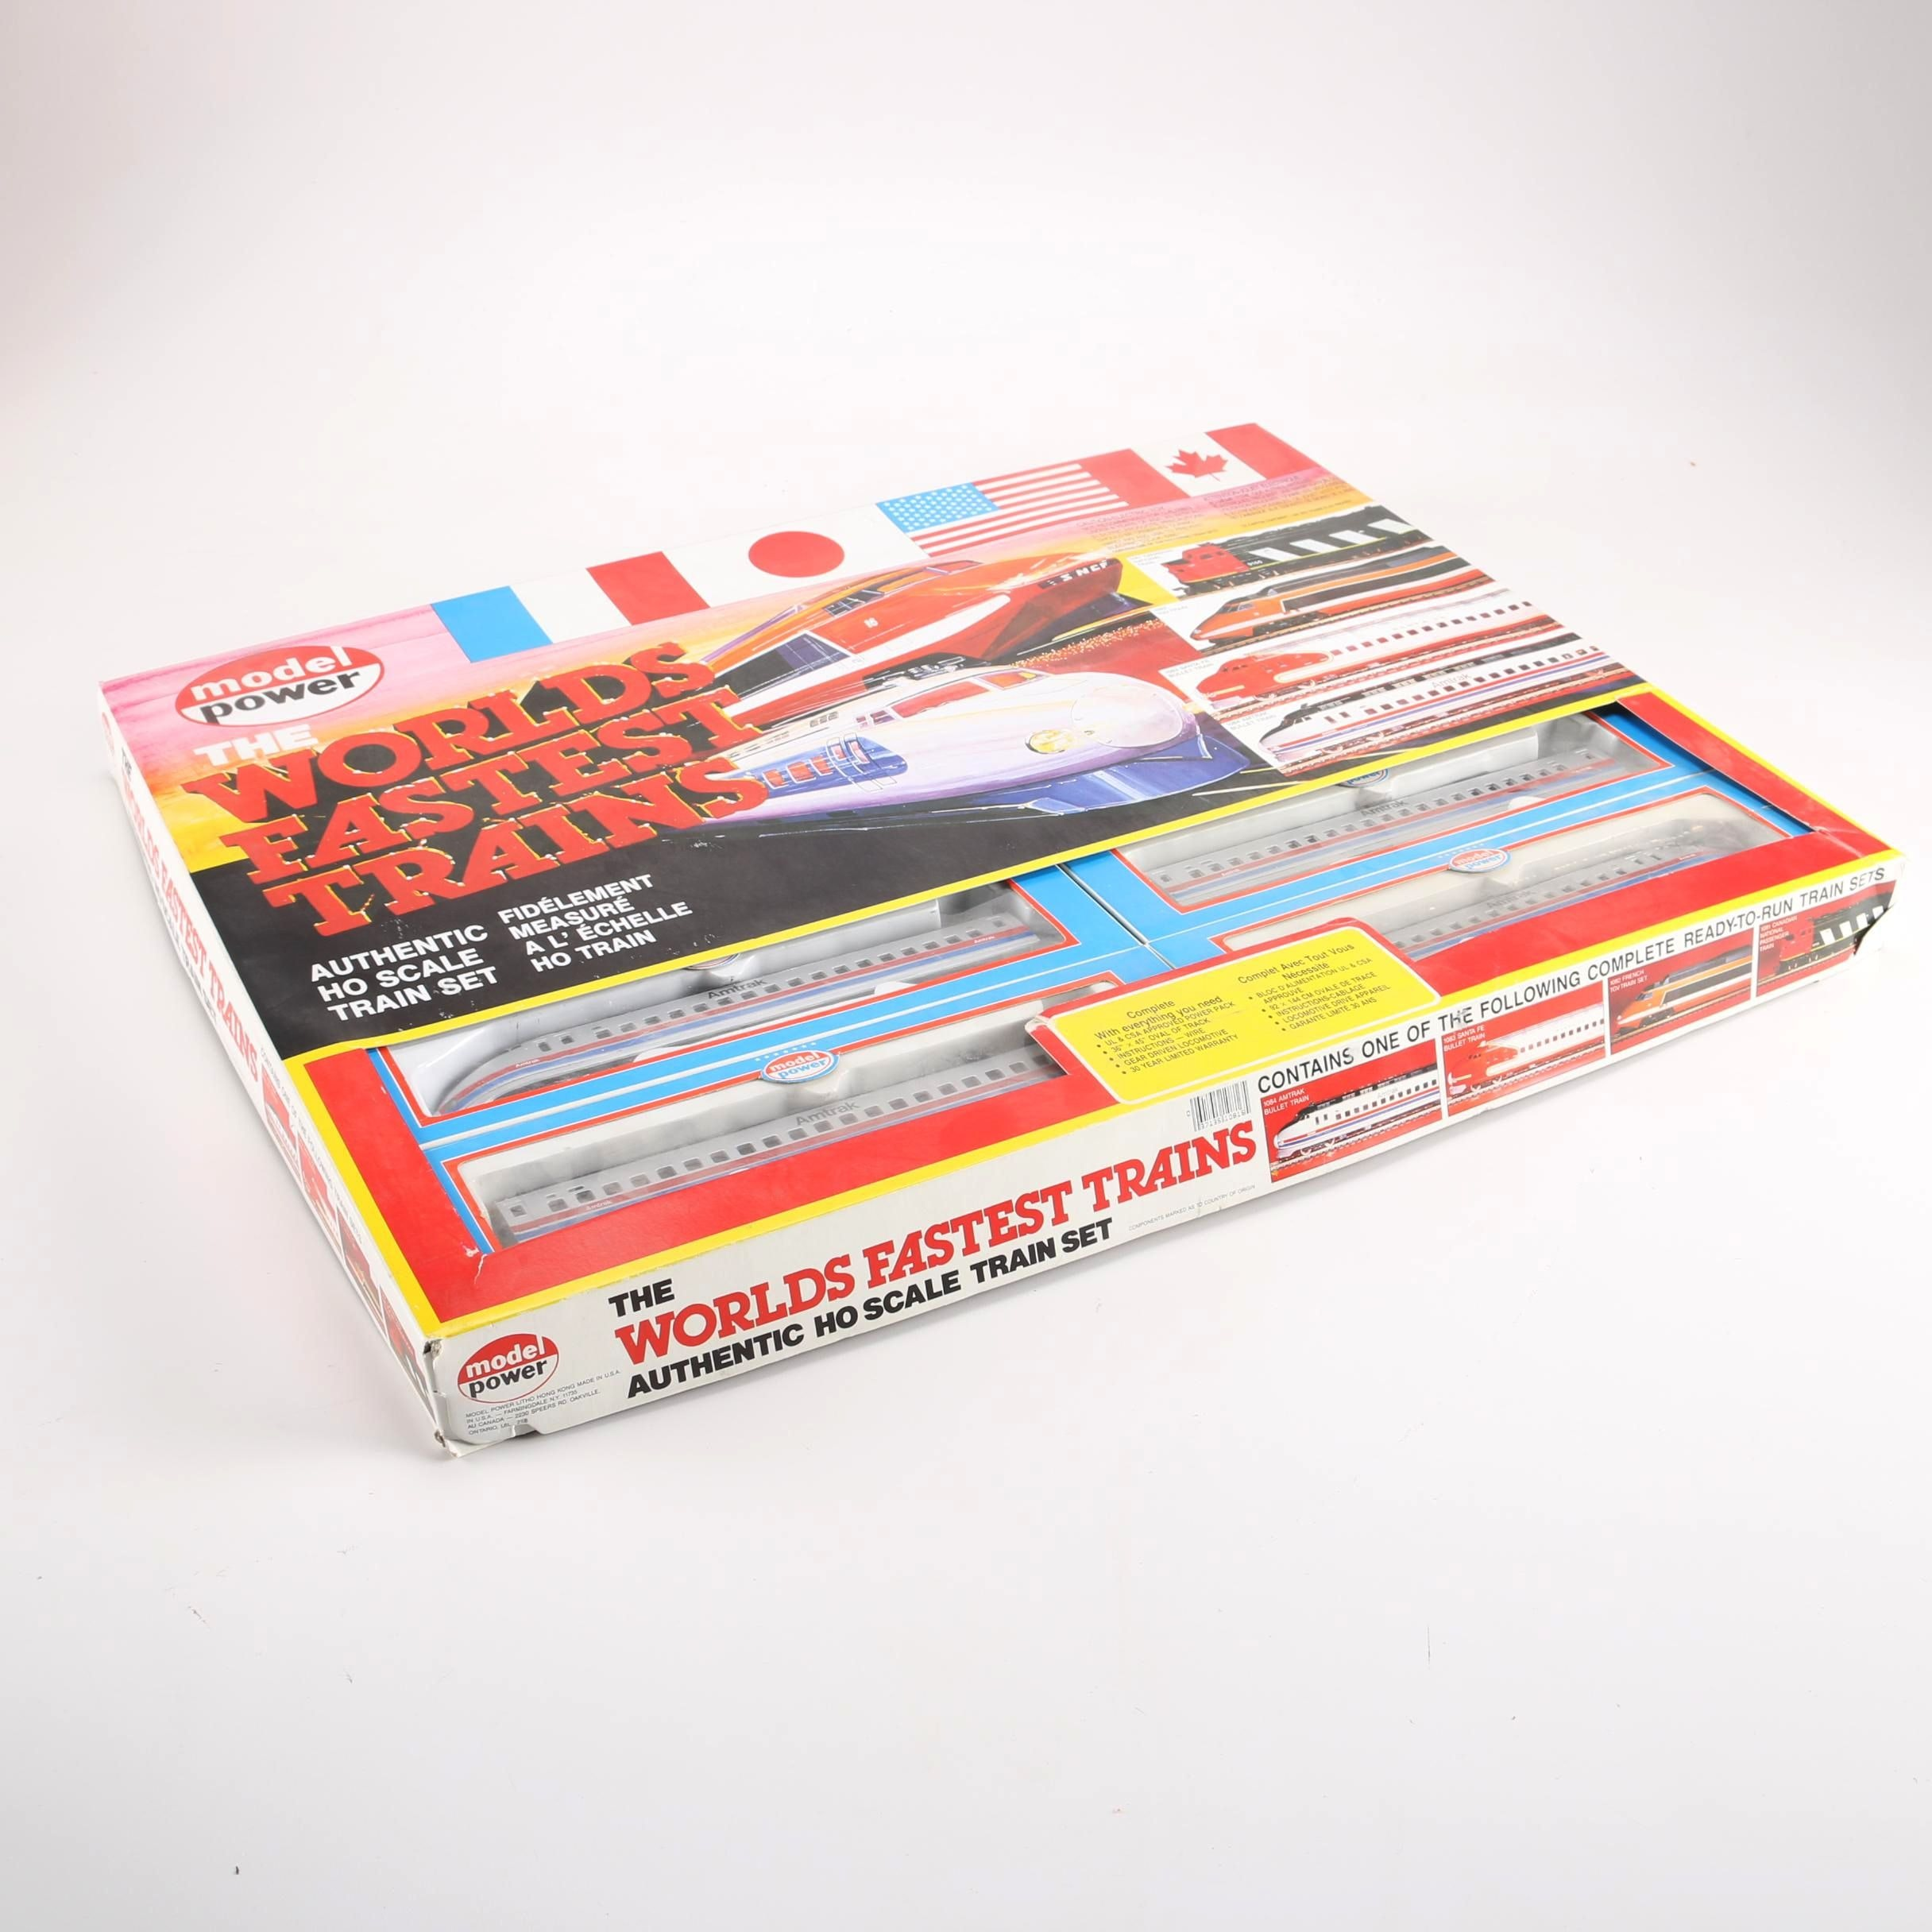 The Worlds Fastest Trains Box Set